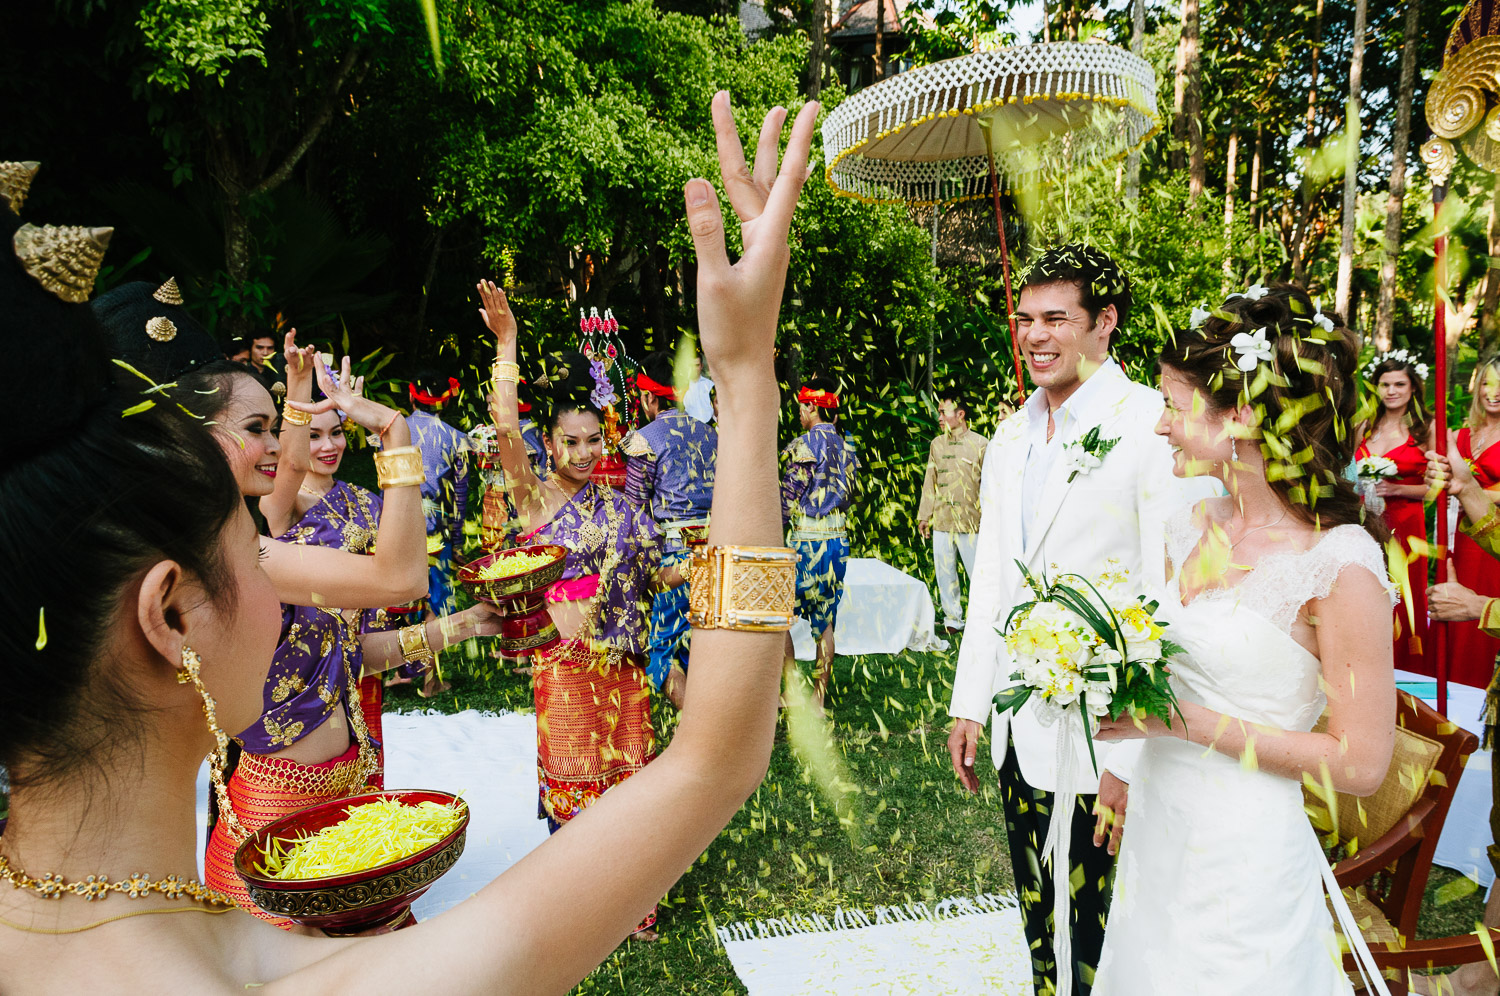 Katie and Tim's wedding day at Four Seasons Resort Chiang Mai, Thailand, on the 28 November 2009.